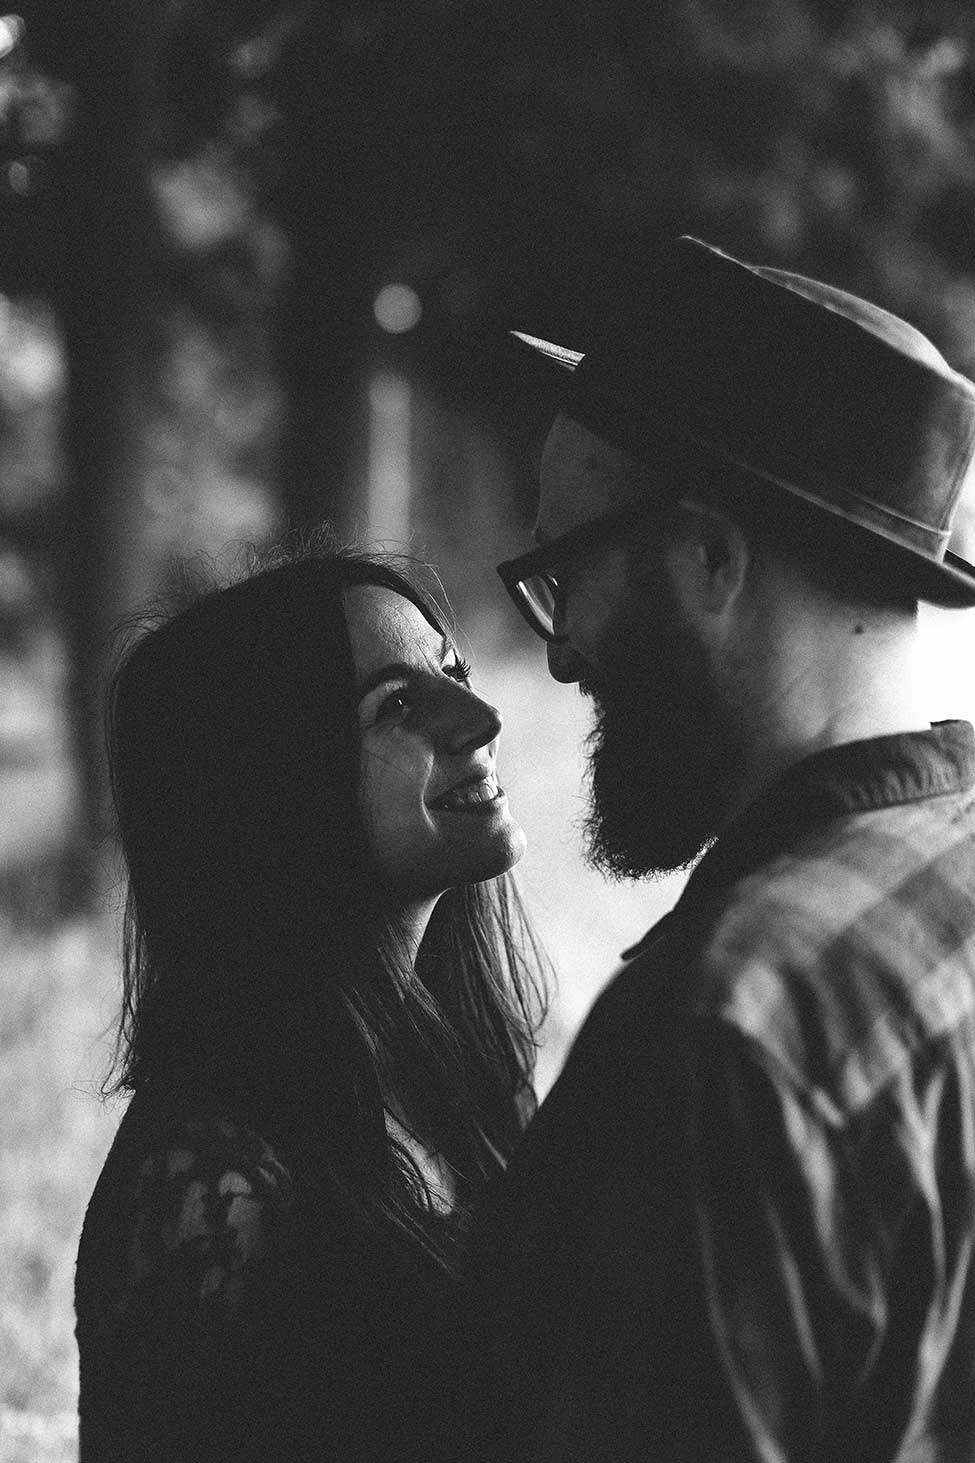 Fine art and film noir face off in this moody engagement photography.